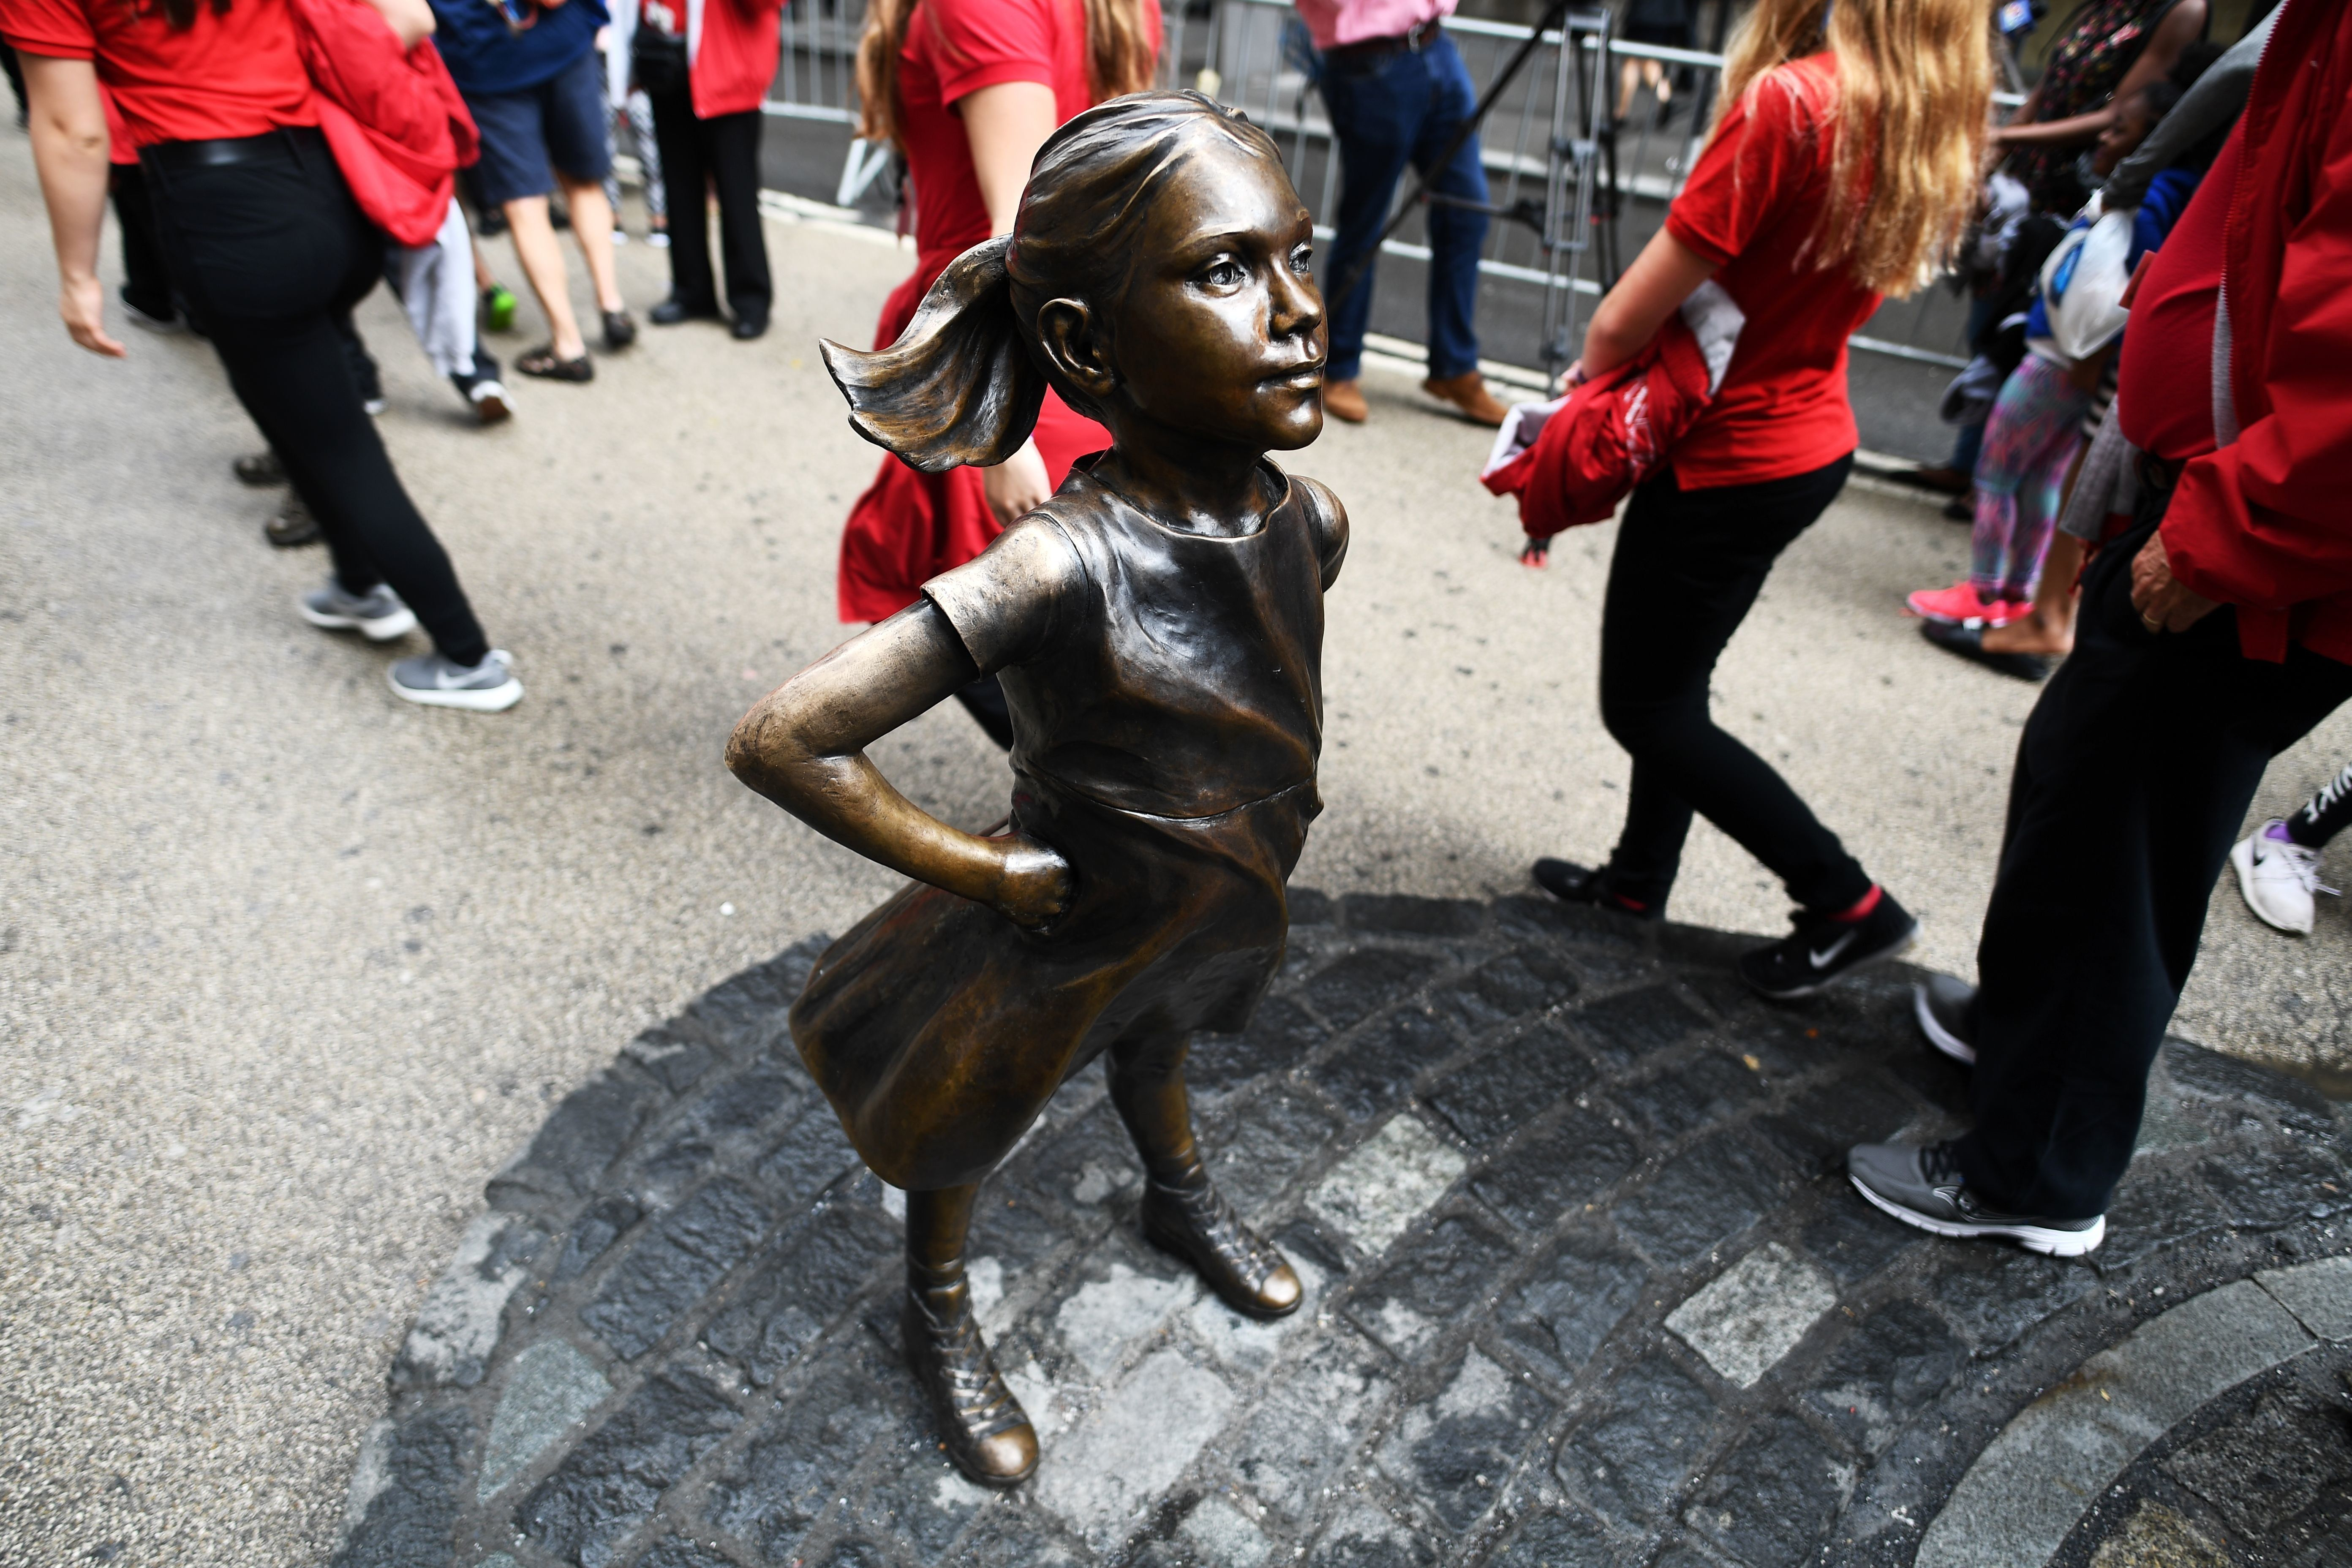 Tourists walk by the Fearless Girl statue in New York City on April 12, 2017.